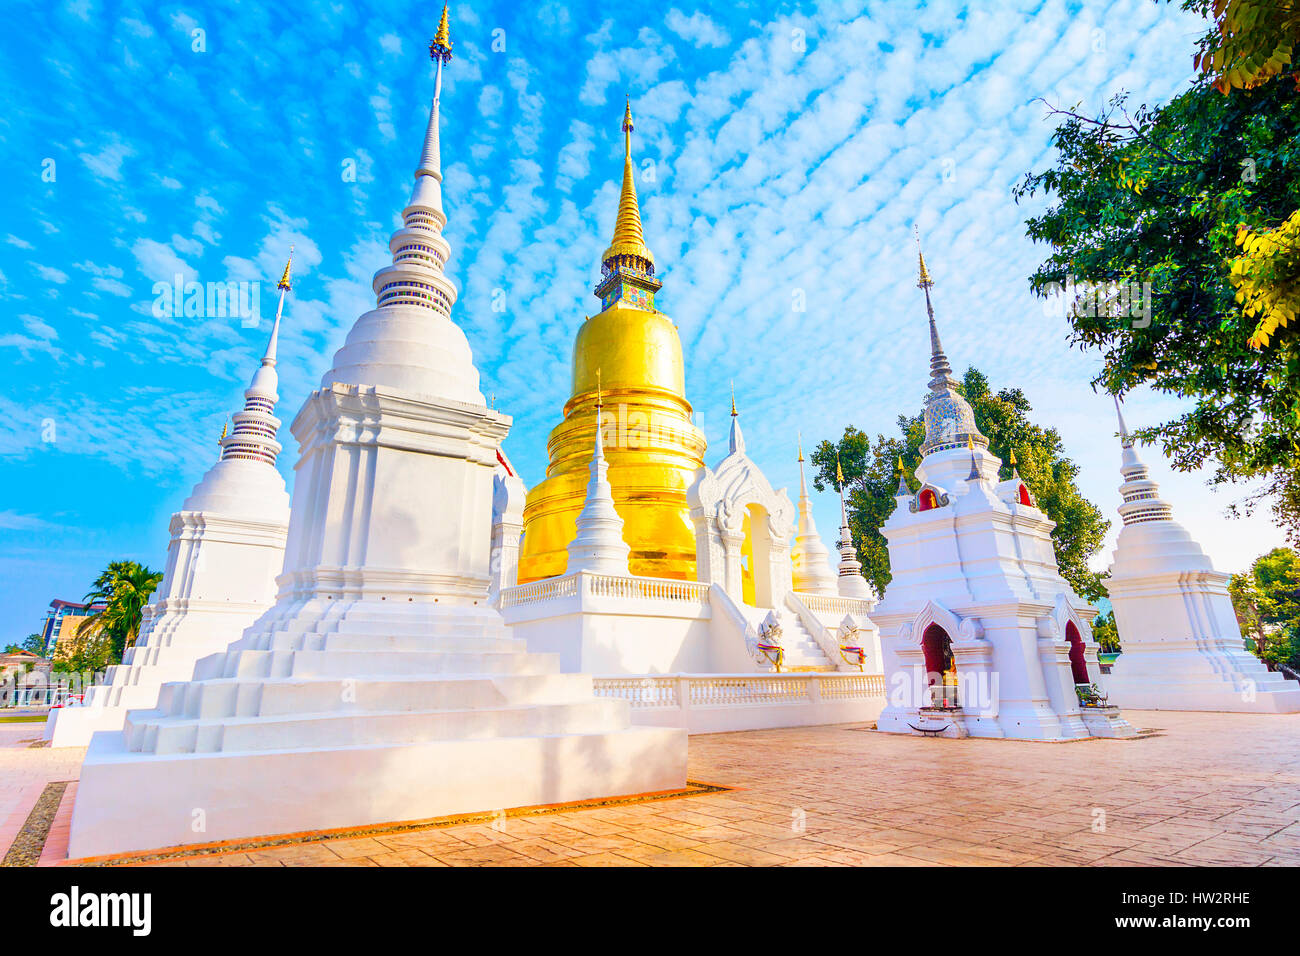 Wat Suan Dok is a Buddhist temple Wat in Chiang Mai, northern Thailand. It's a Royal Temple of the Third Class. - Stock Image